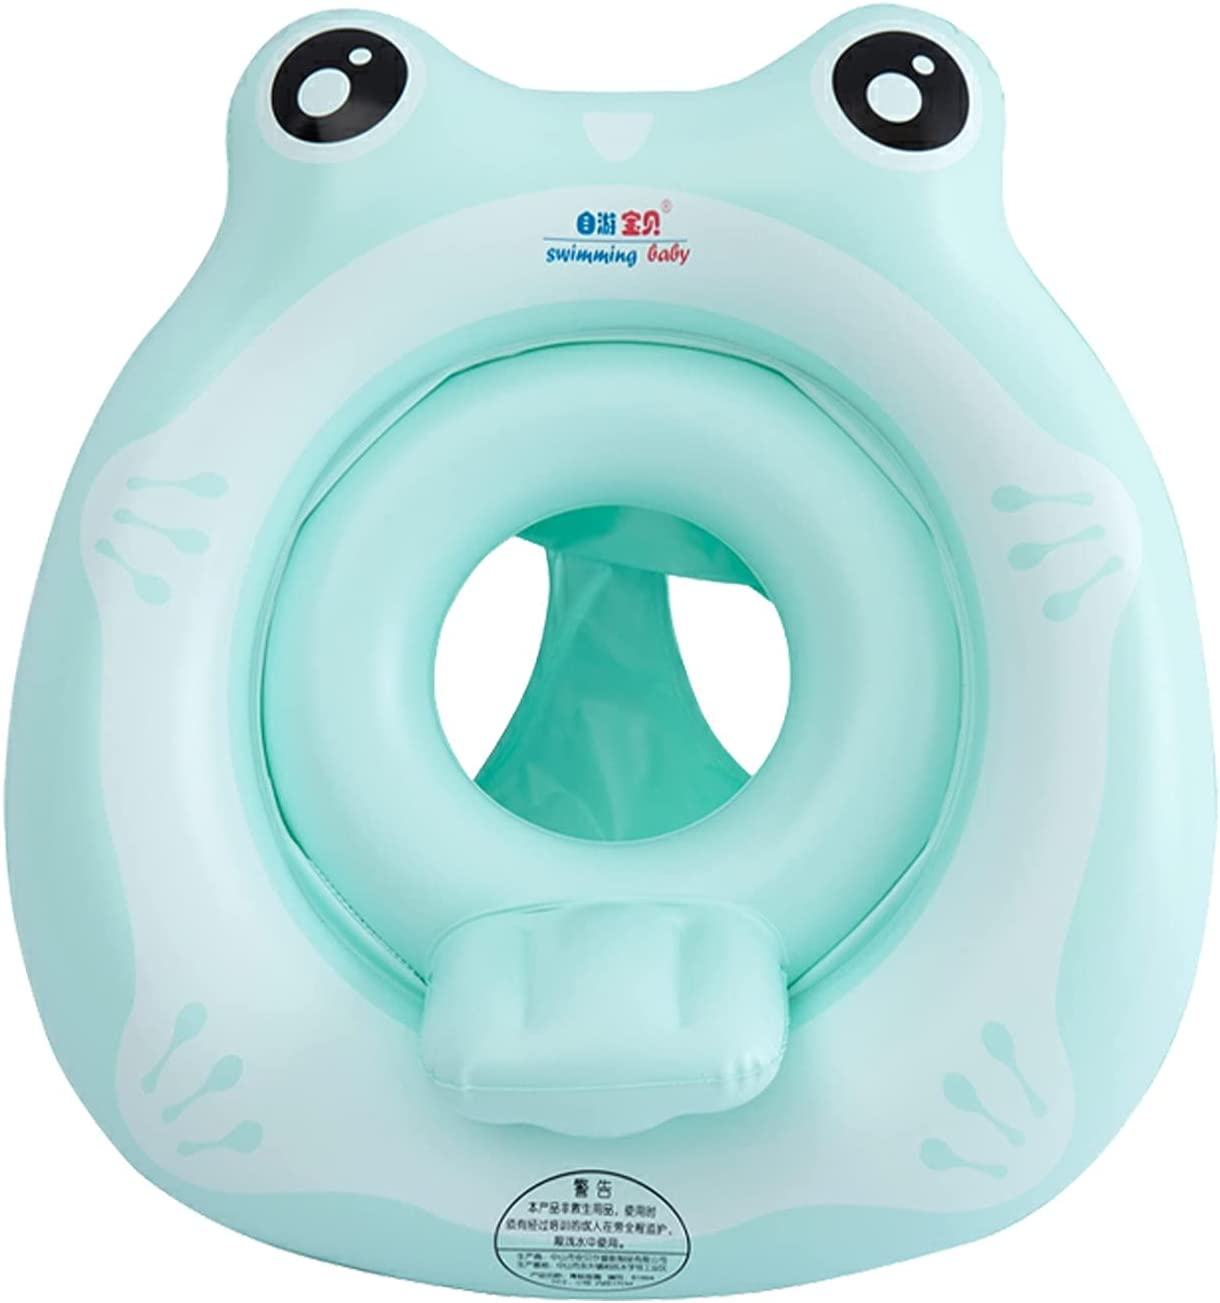 luxoti Baby Swimming Float Floats Inflatable Ranking integrated 1st place Max 73% OFF Pool